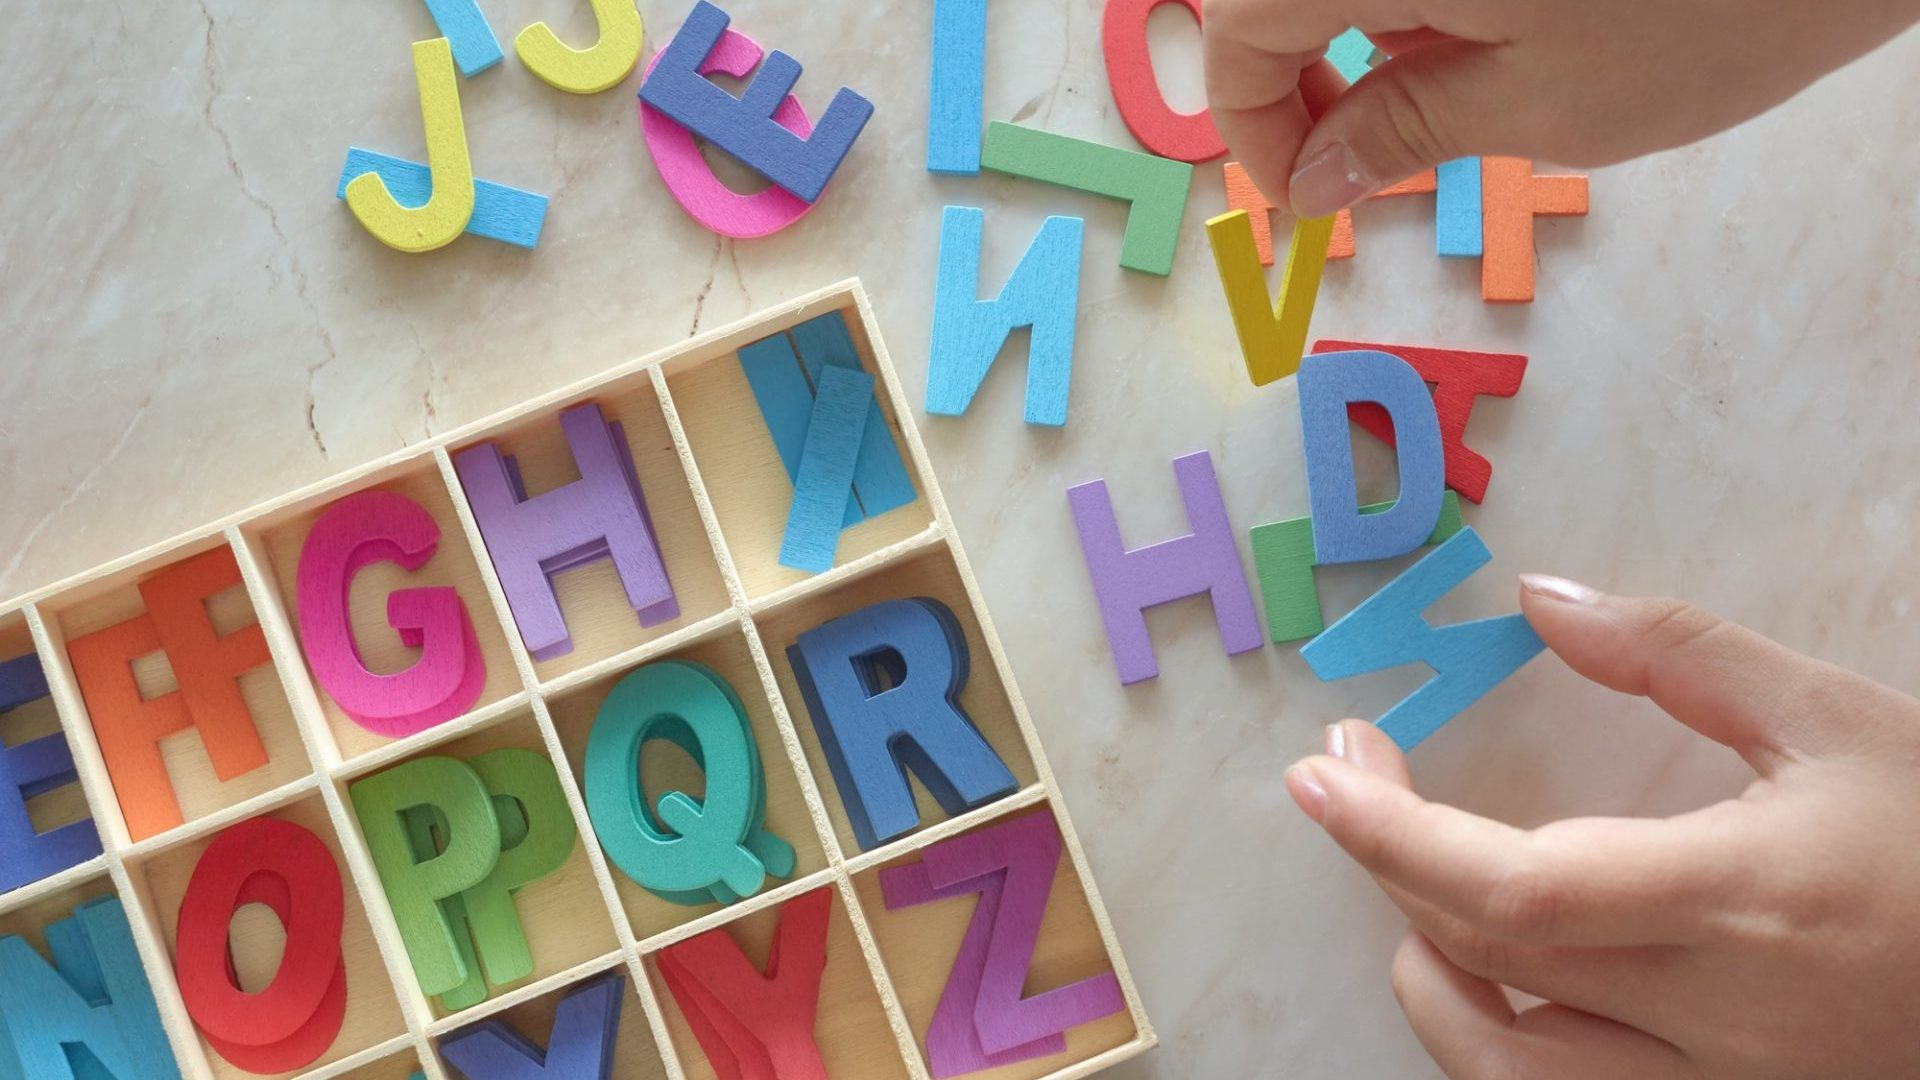 Child play the colorful wooden alphabet toy